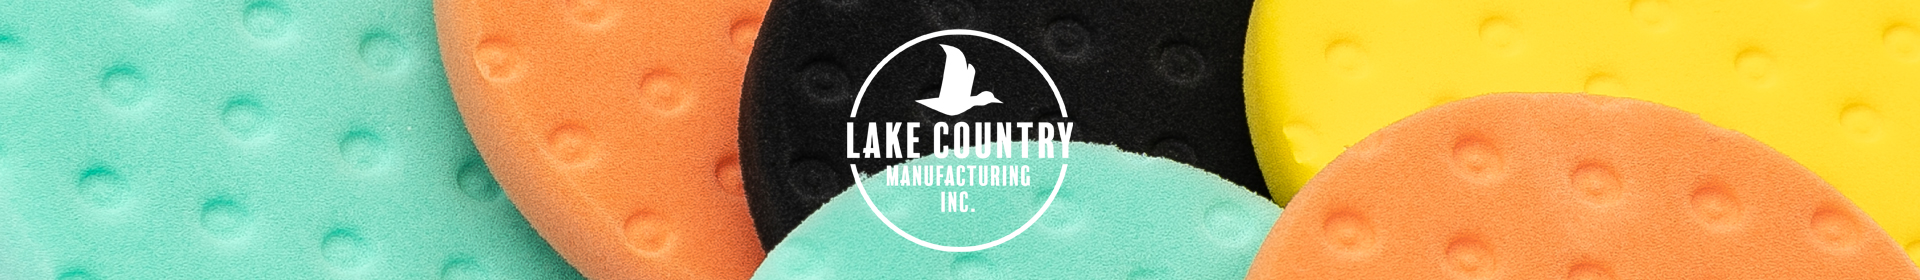 category-marketing-banner-brands-lake-country-small.jpg